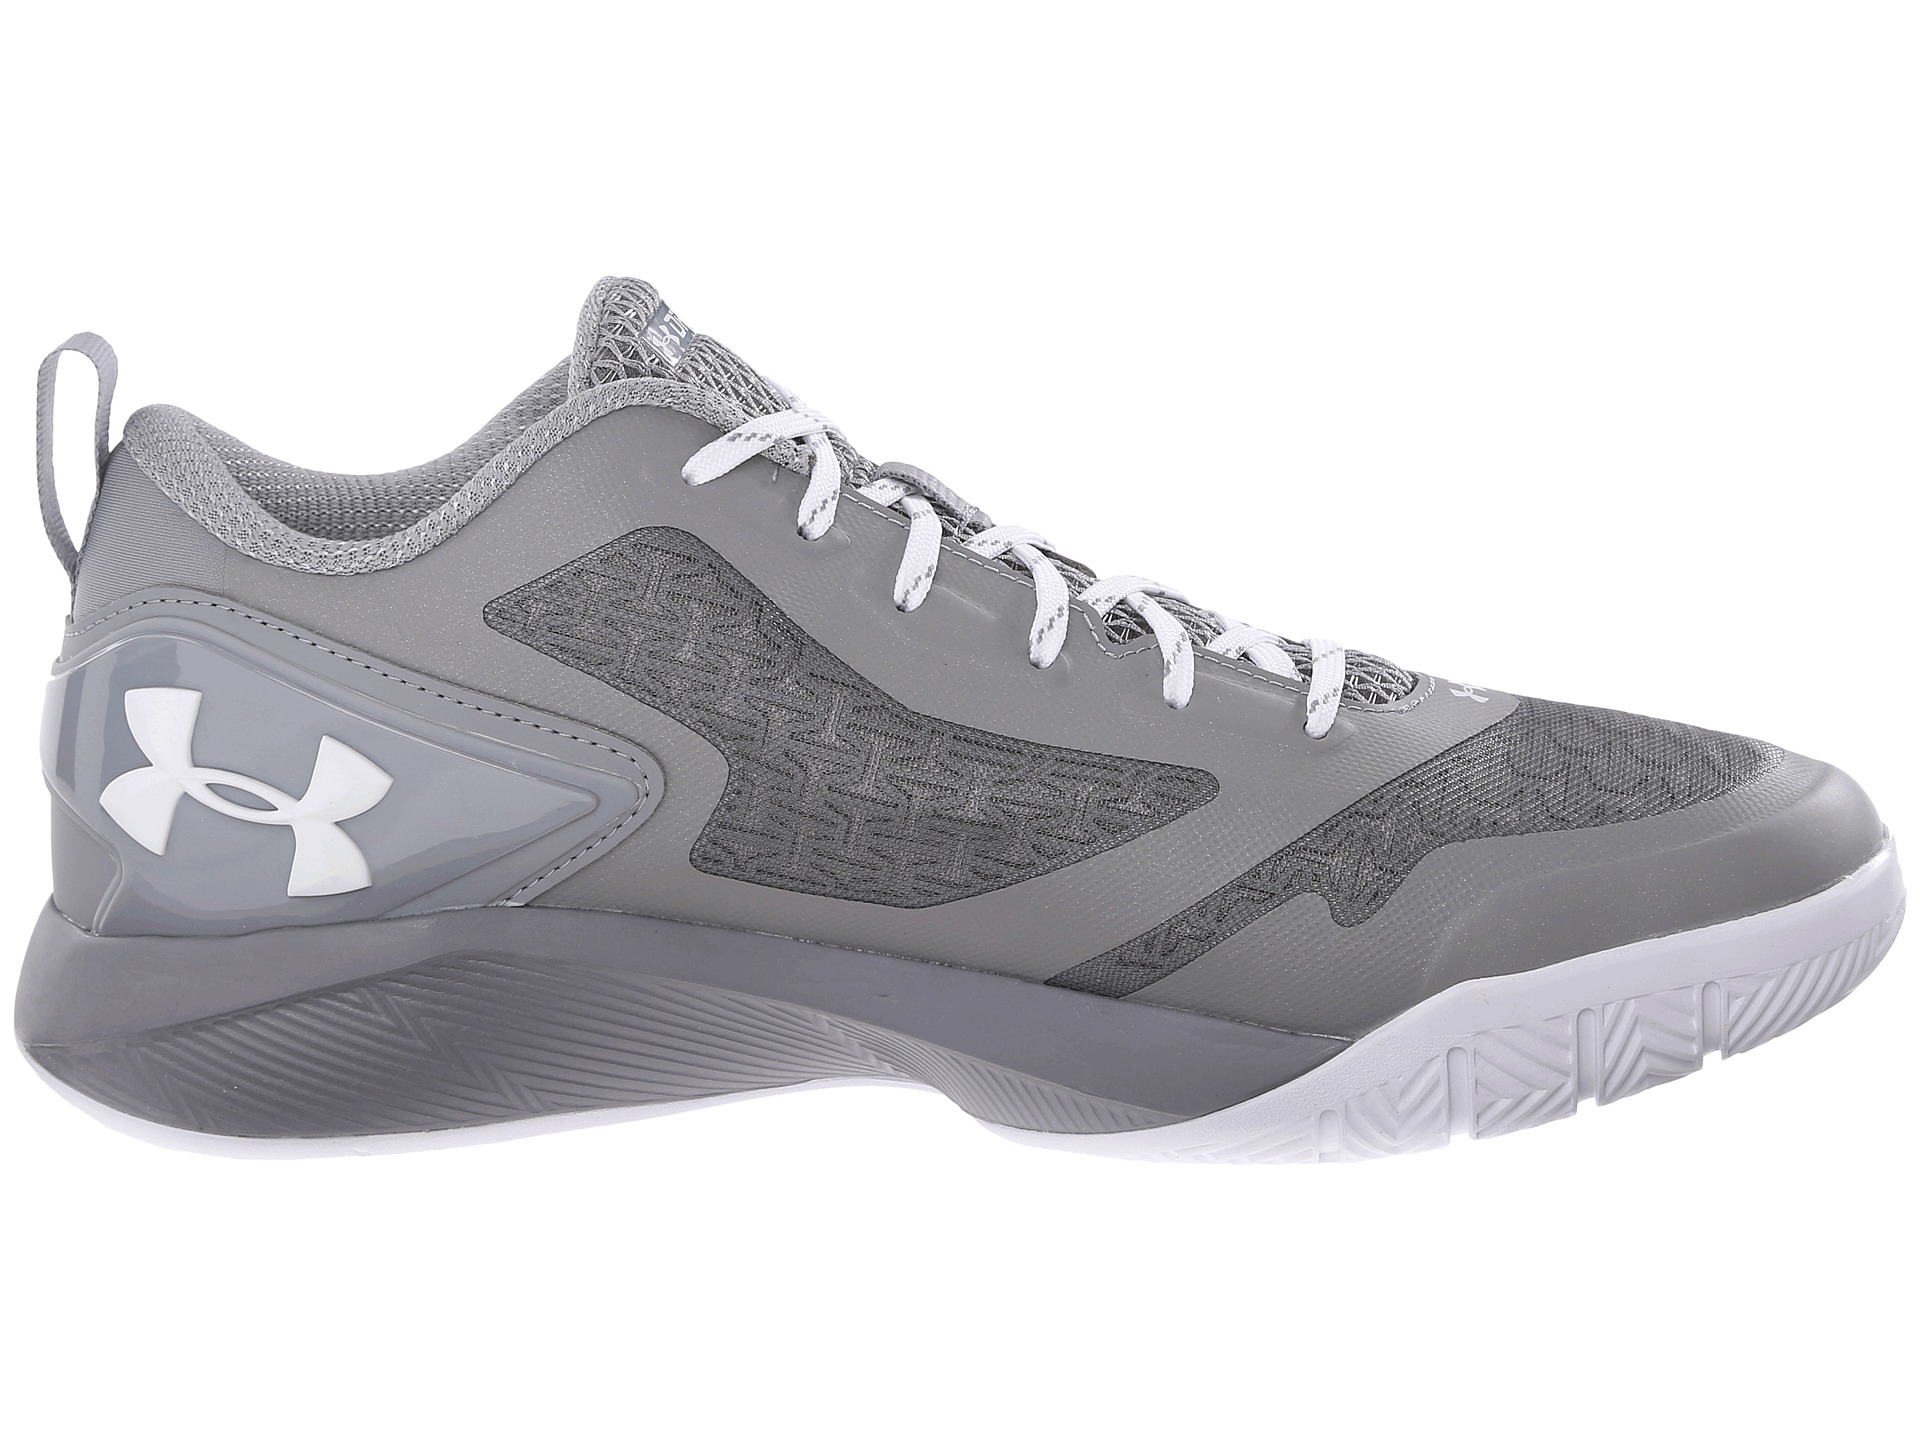 d71817ac8c ... reduced lyst under armour ua clutchfit drive 2 low in gray for men  90338 2a60f